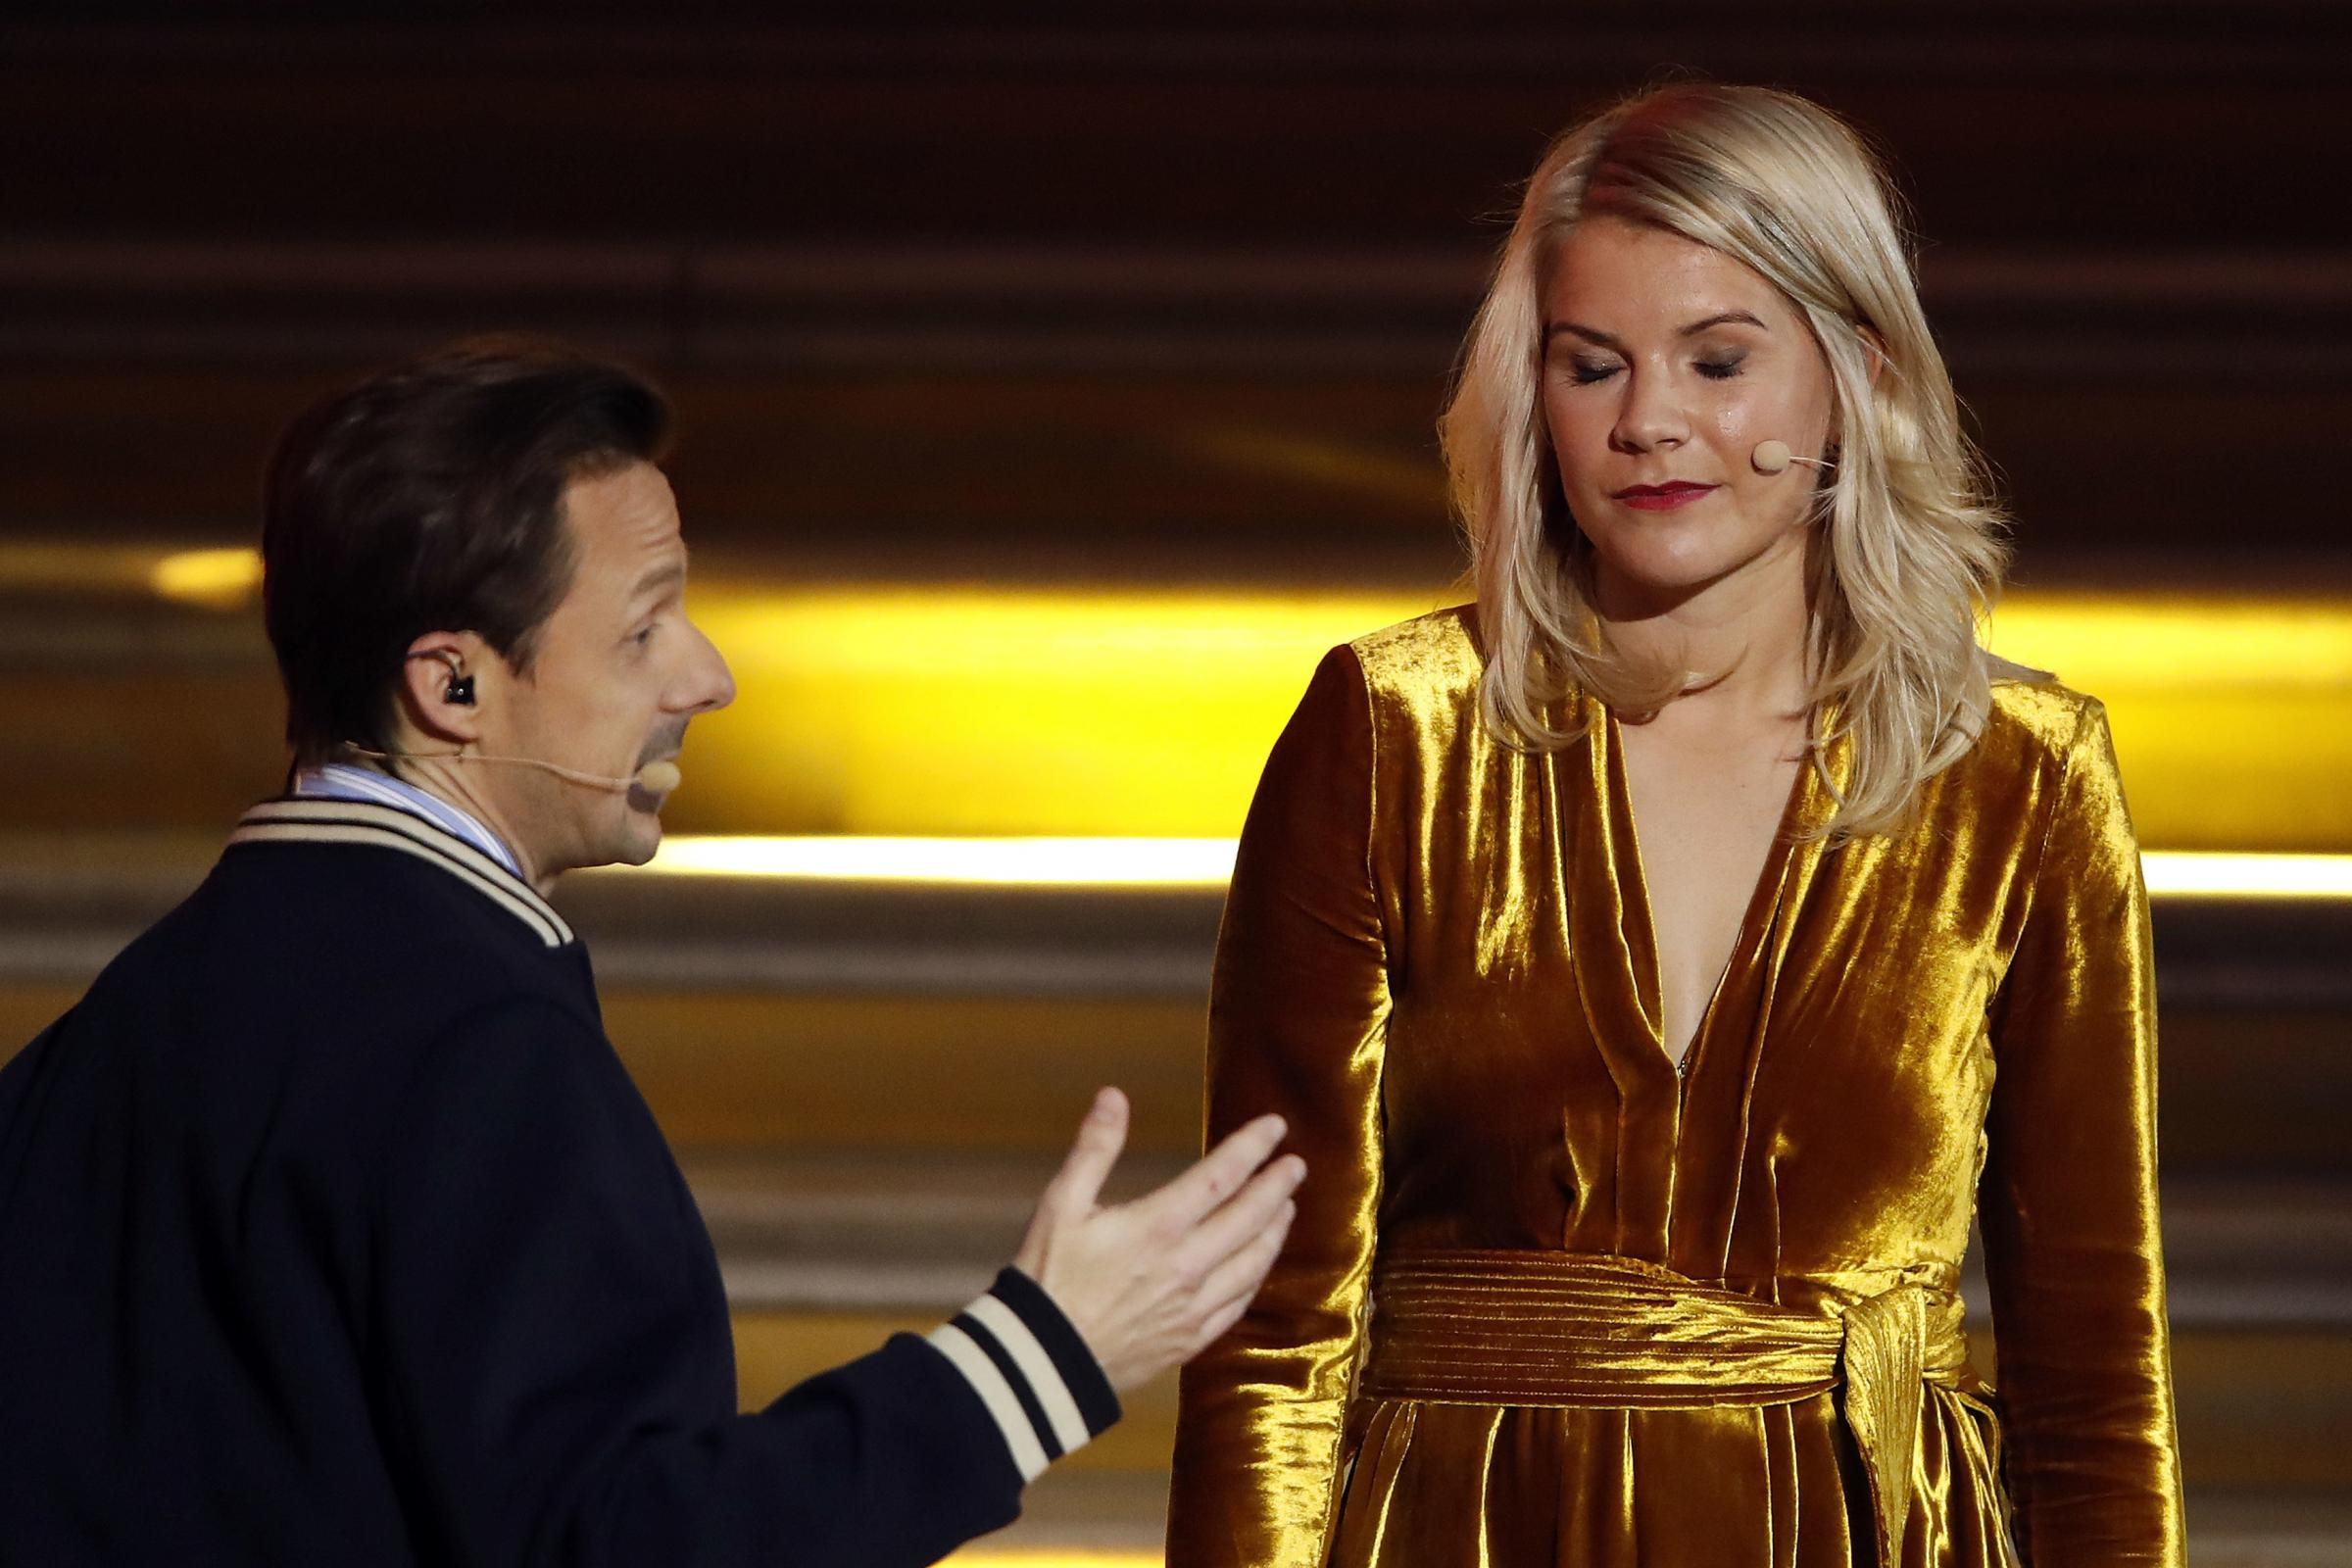 French DJ and musician Martin Solveig, with female Ballon D'or winner Ada Hegerberg.